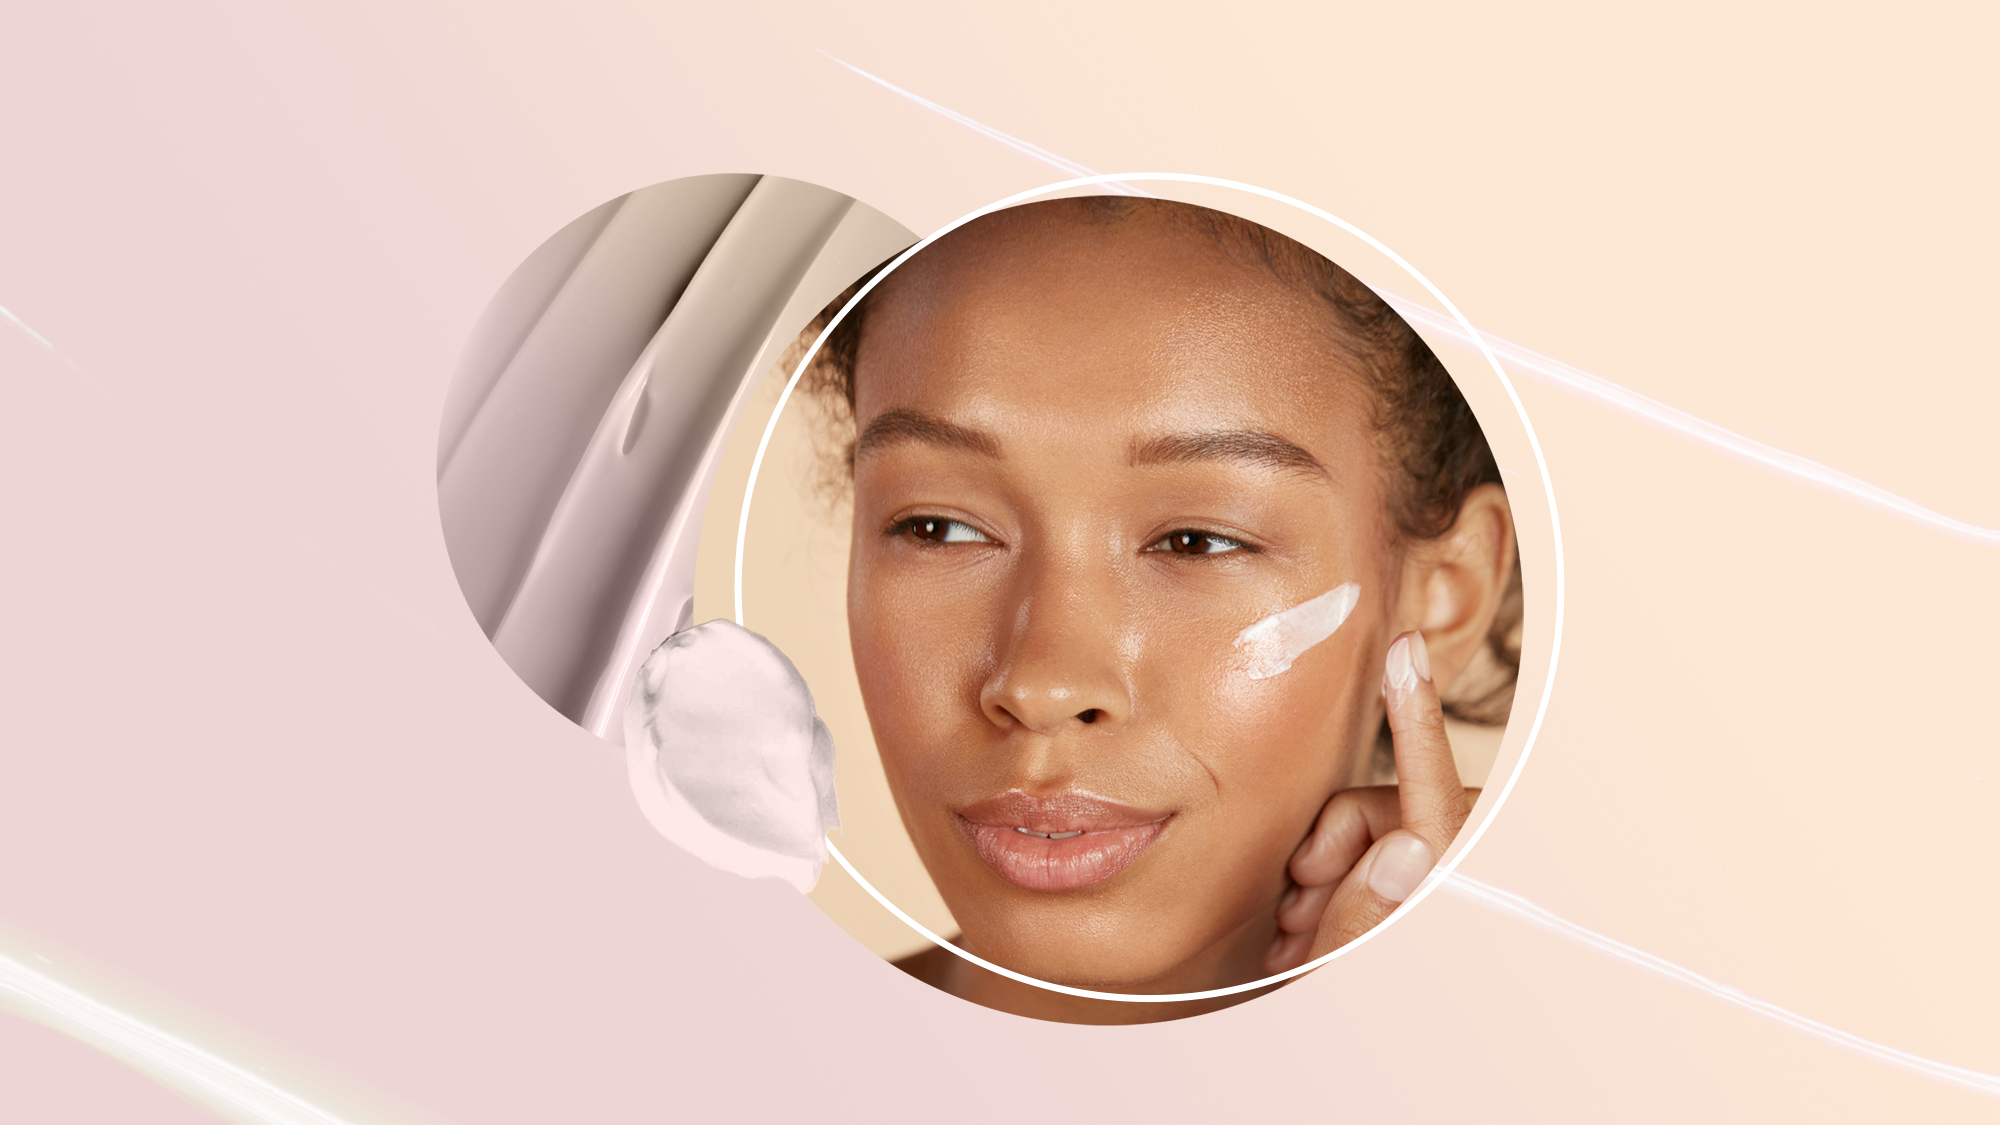 """Shoppers Say This """"Miracle"""" Face Cream Helps With Everything From Acne Scars to Lip and Forehead Wrinkles , Face skin care. Woman applying cosmetic cream on clean hydrated skin portrait. Beautiful happy smiling african americangirl model with natural makeup applying facial moisturizer, beauty product"""